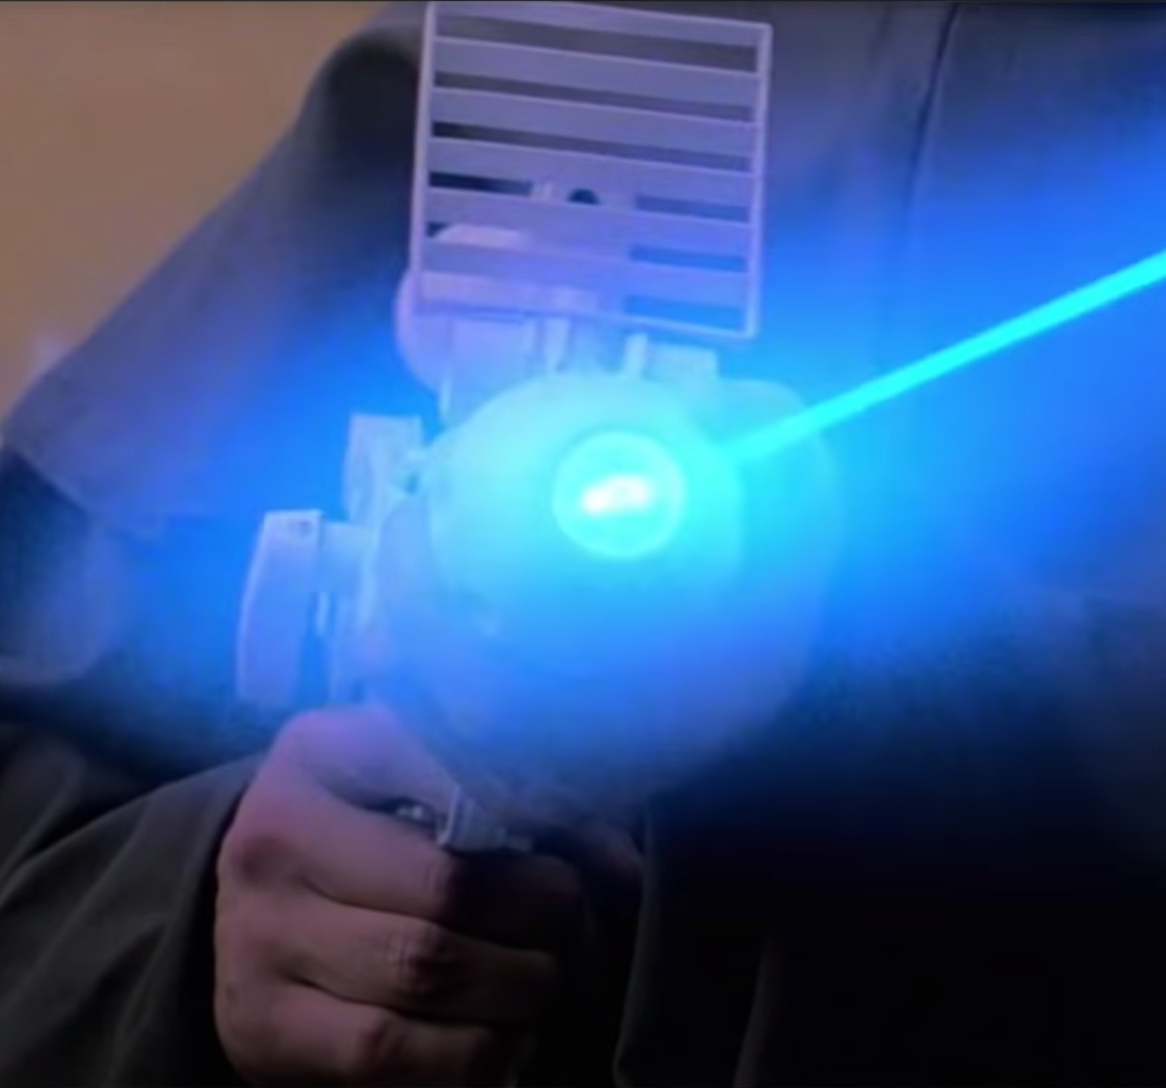 File:Gadgets - MR - Laser.png